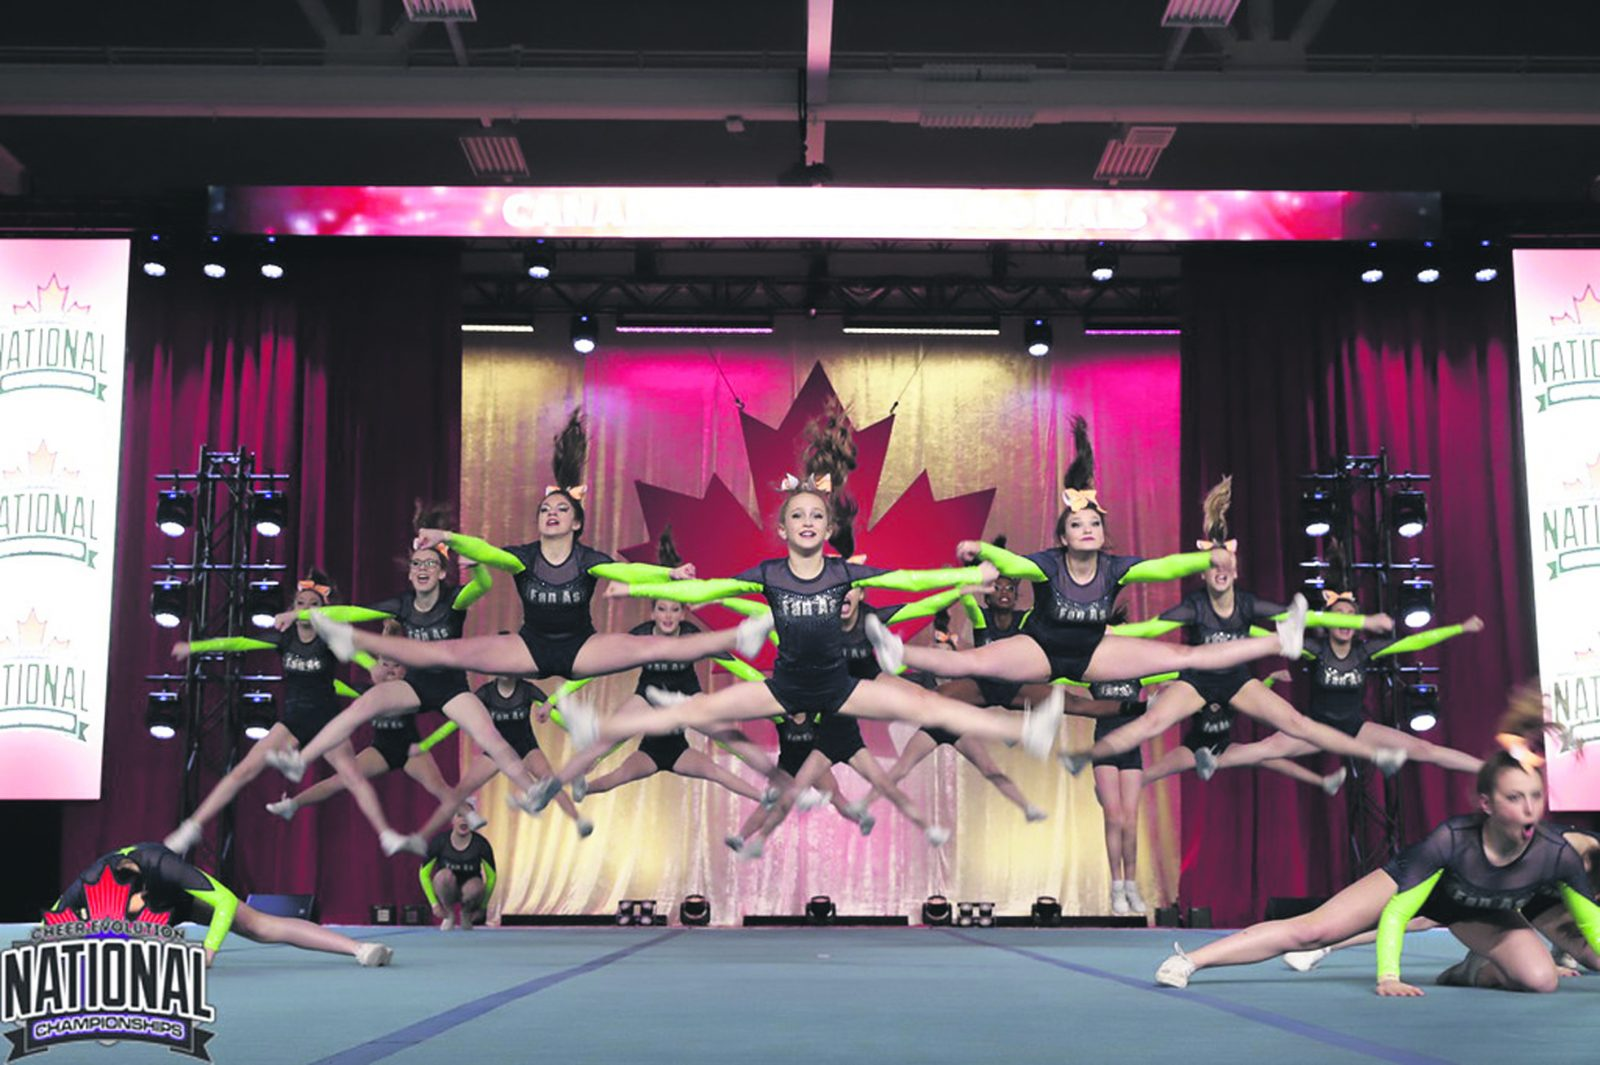 Championnat national de cheerleading – L'équipe Shining Star frise les marches du podium